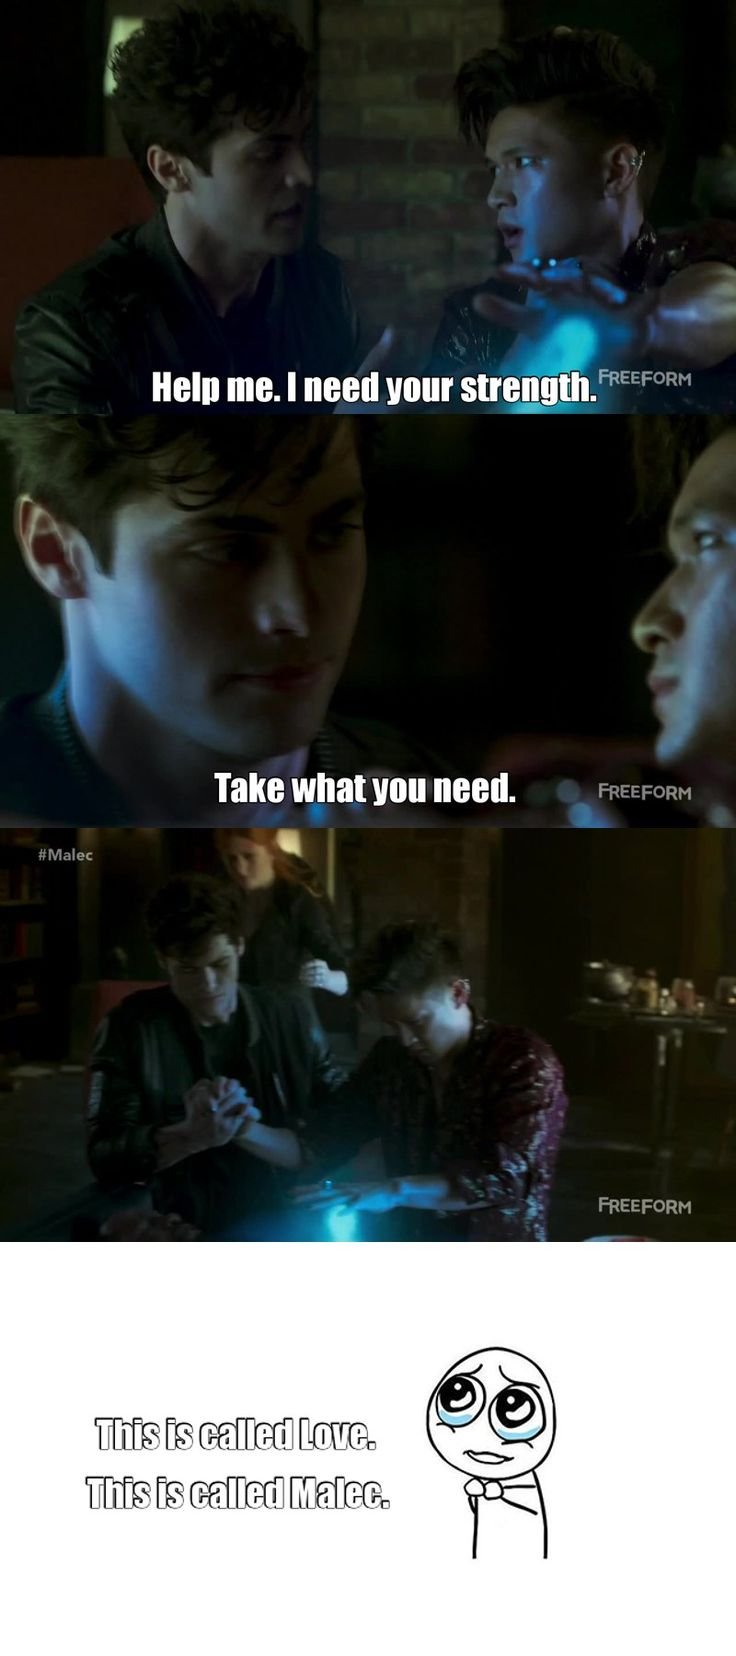 """Shadowhunters S01E06 - Of Men and Angels -""""Do you remember when I needed some of your strength?"""" -""""Do you need it again now?"""" Alec said. """"Because you can have it."""" -""""I always need your strength, Alec.""""  Malec"""